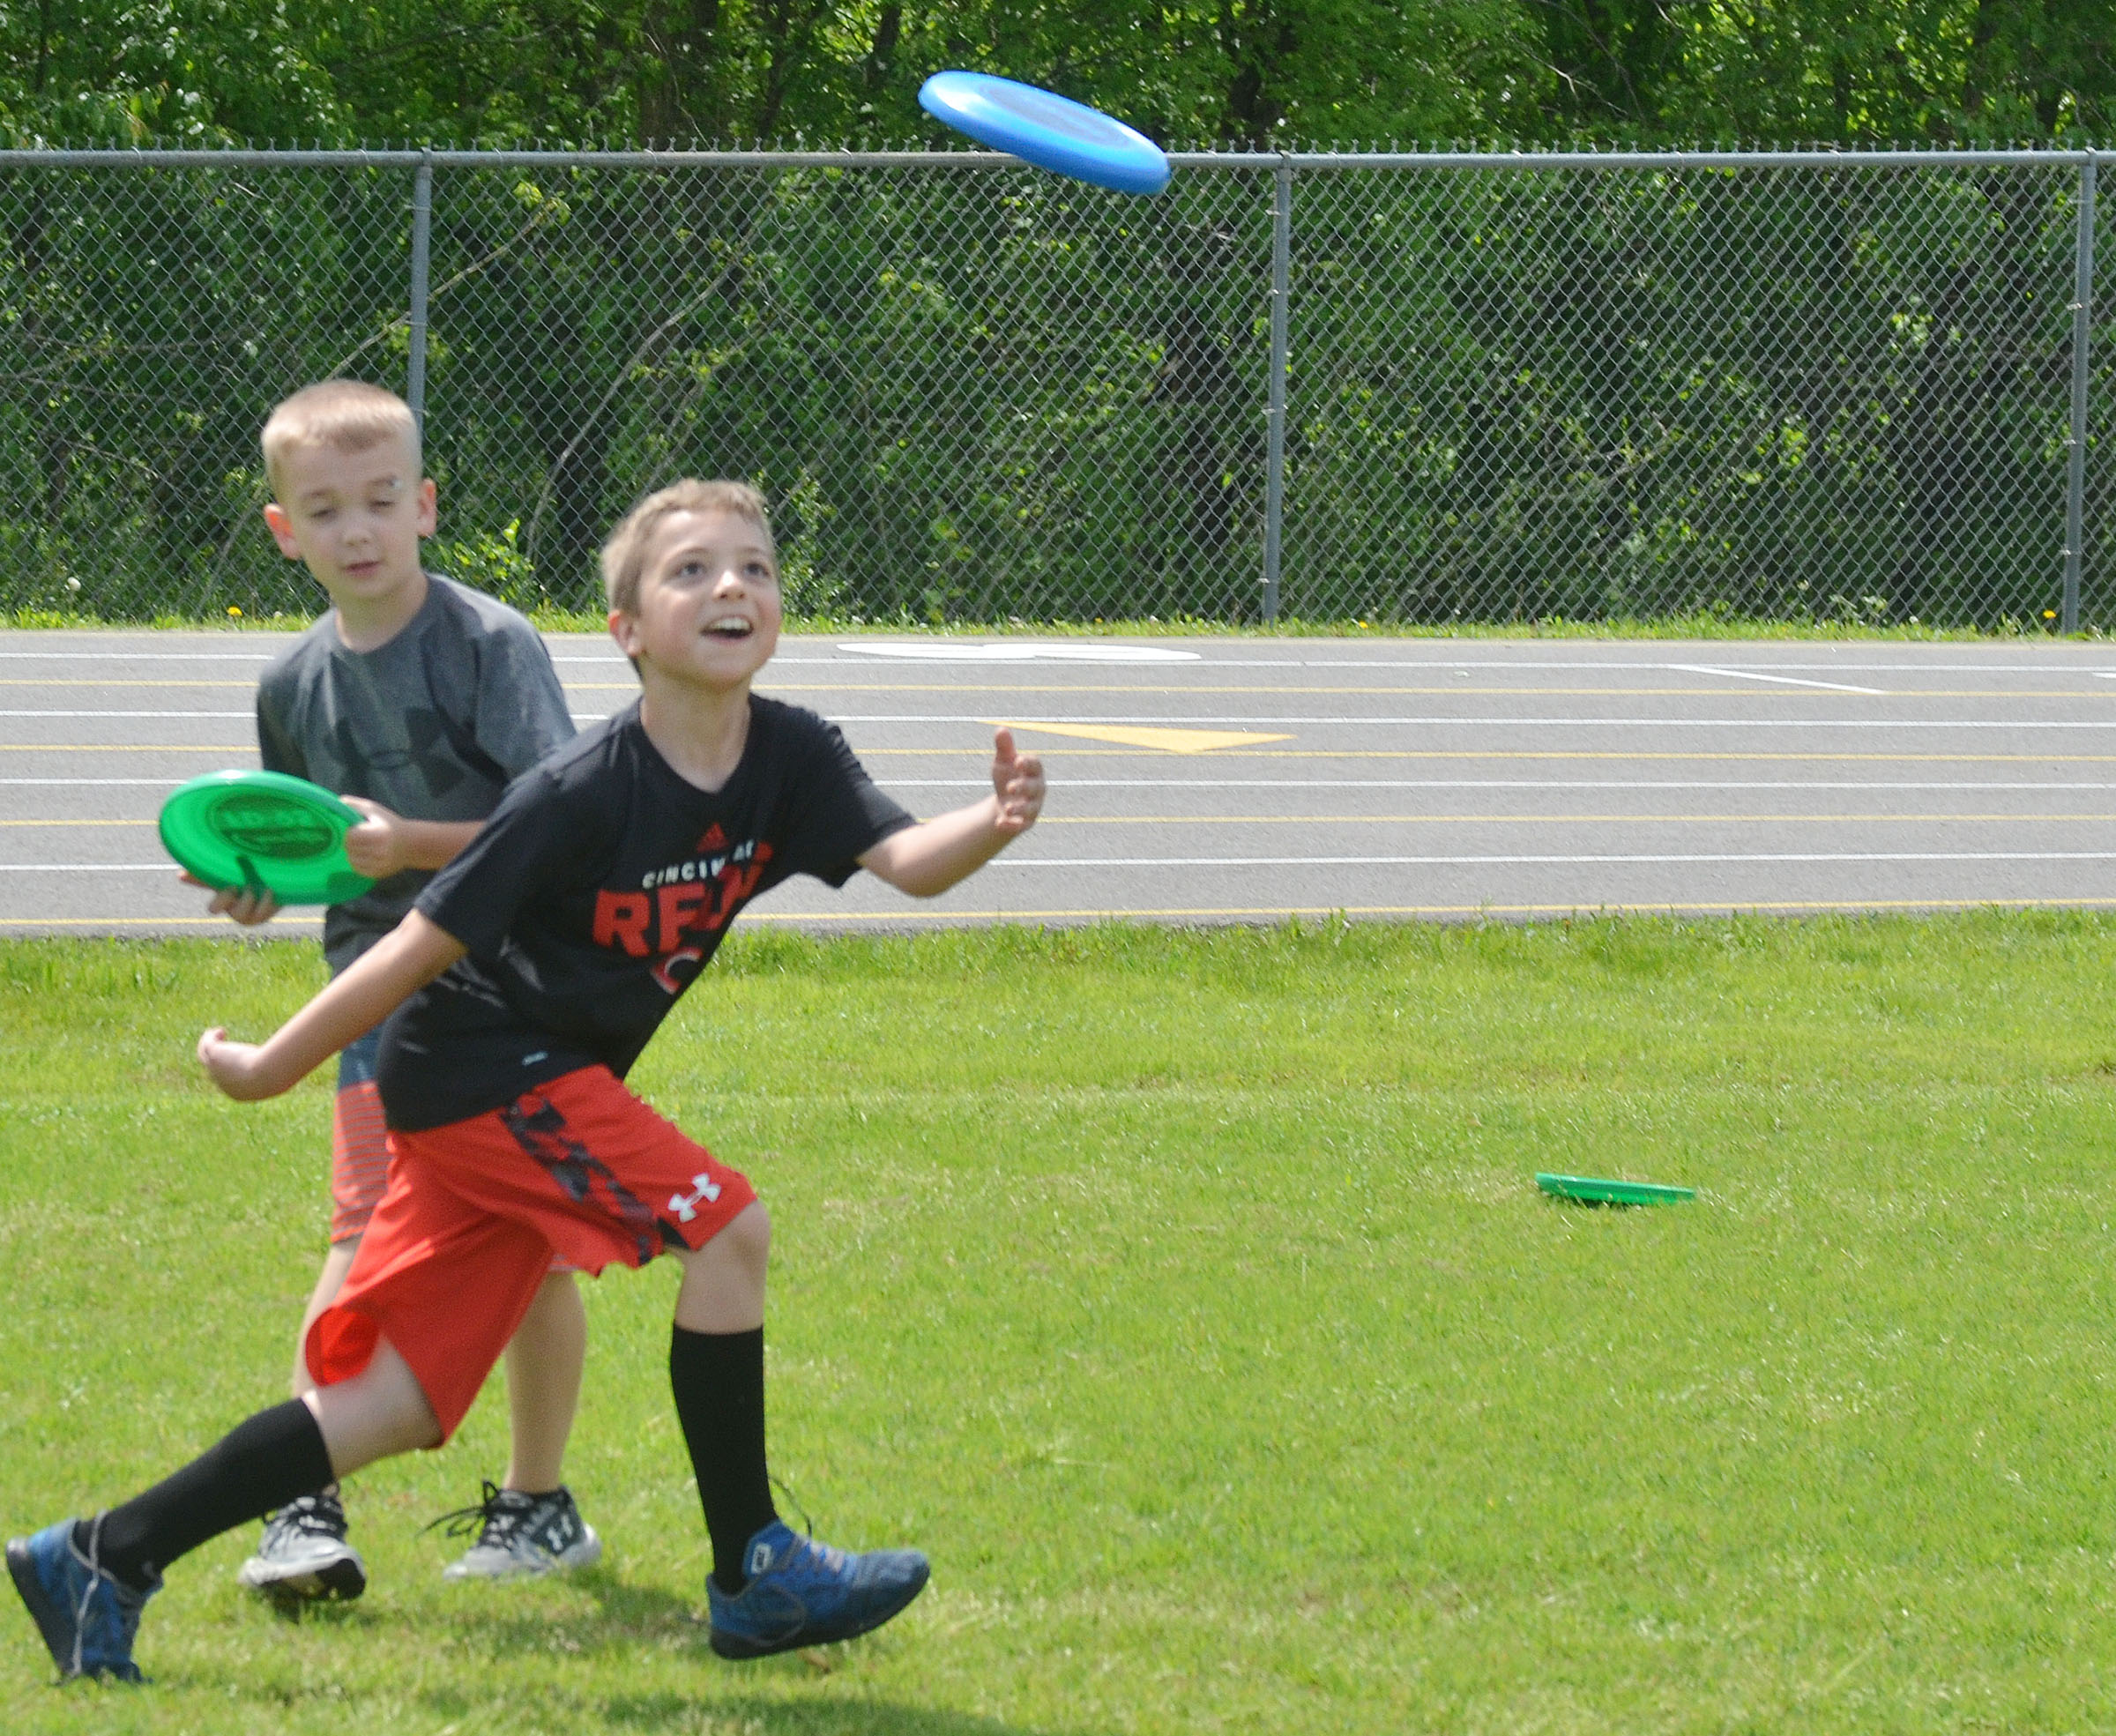 CES third-grader Carson Mills catches a Frisbee.